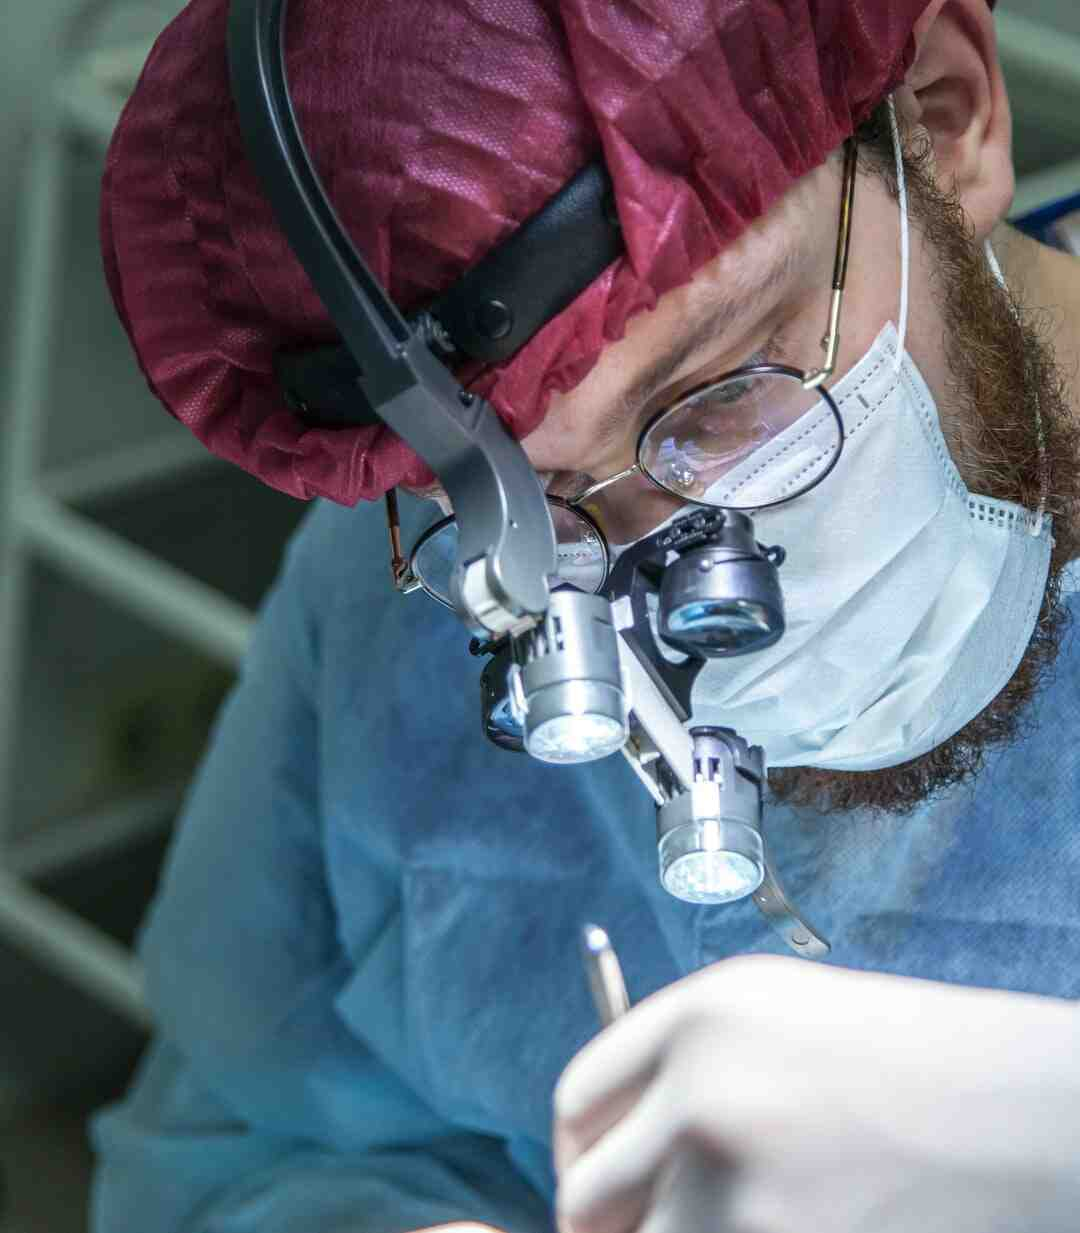 How much cataract surgery cost